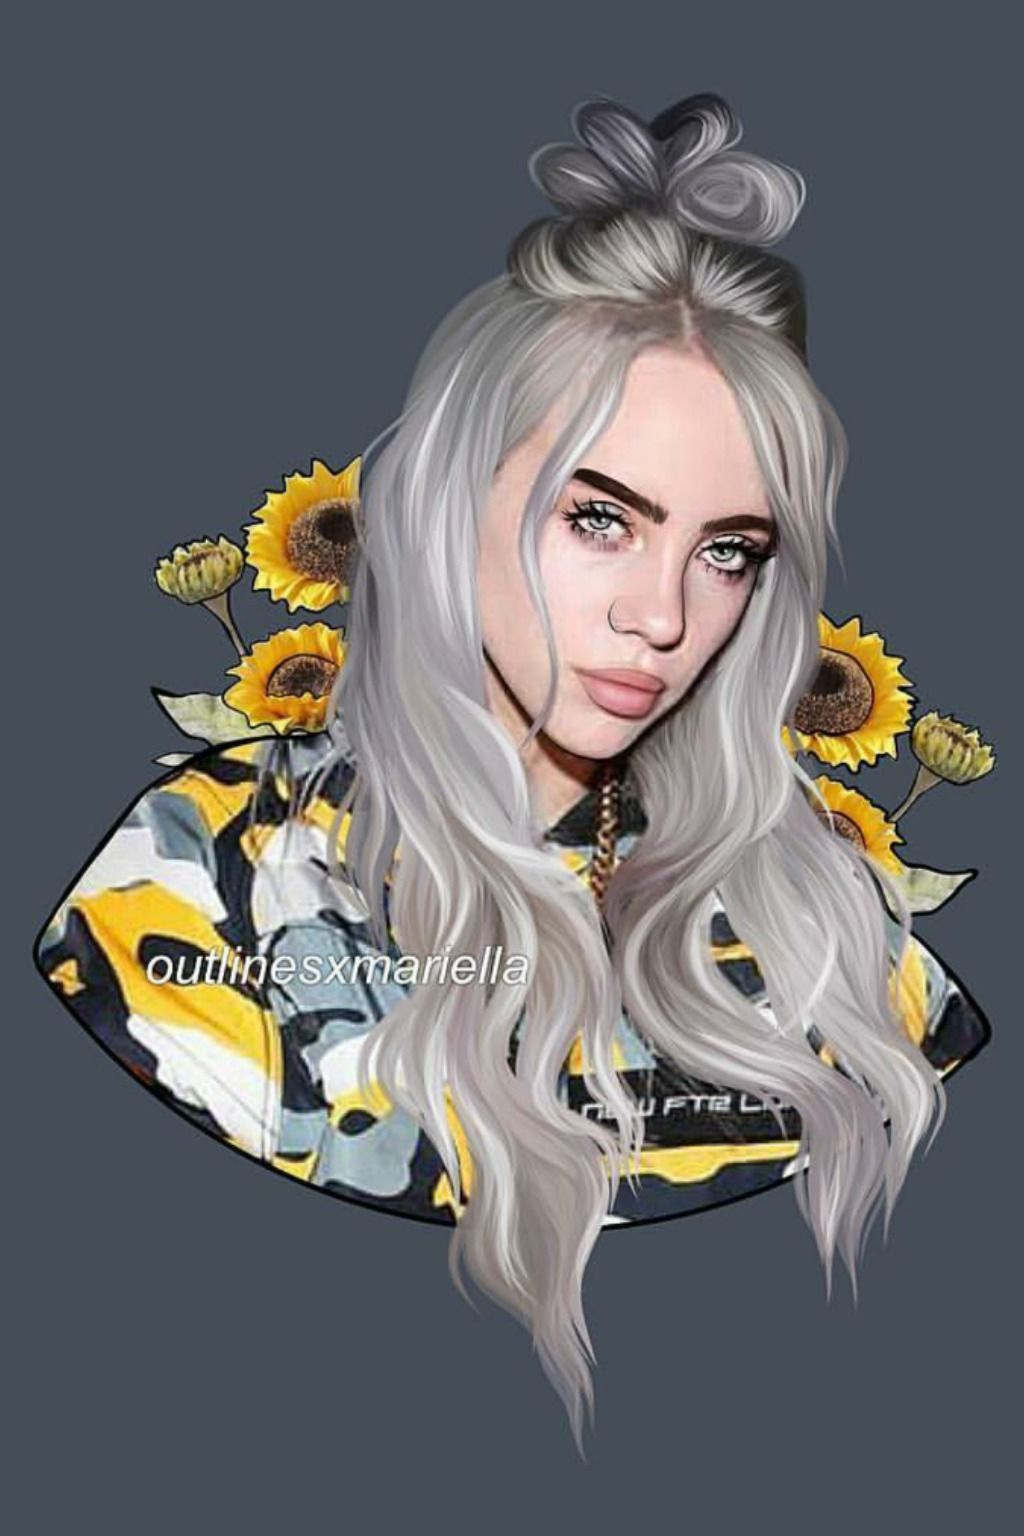 10 Ways To Use Stickers To Flood Your Socials With Billie Eilish Fan Art